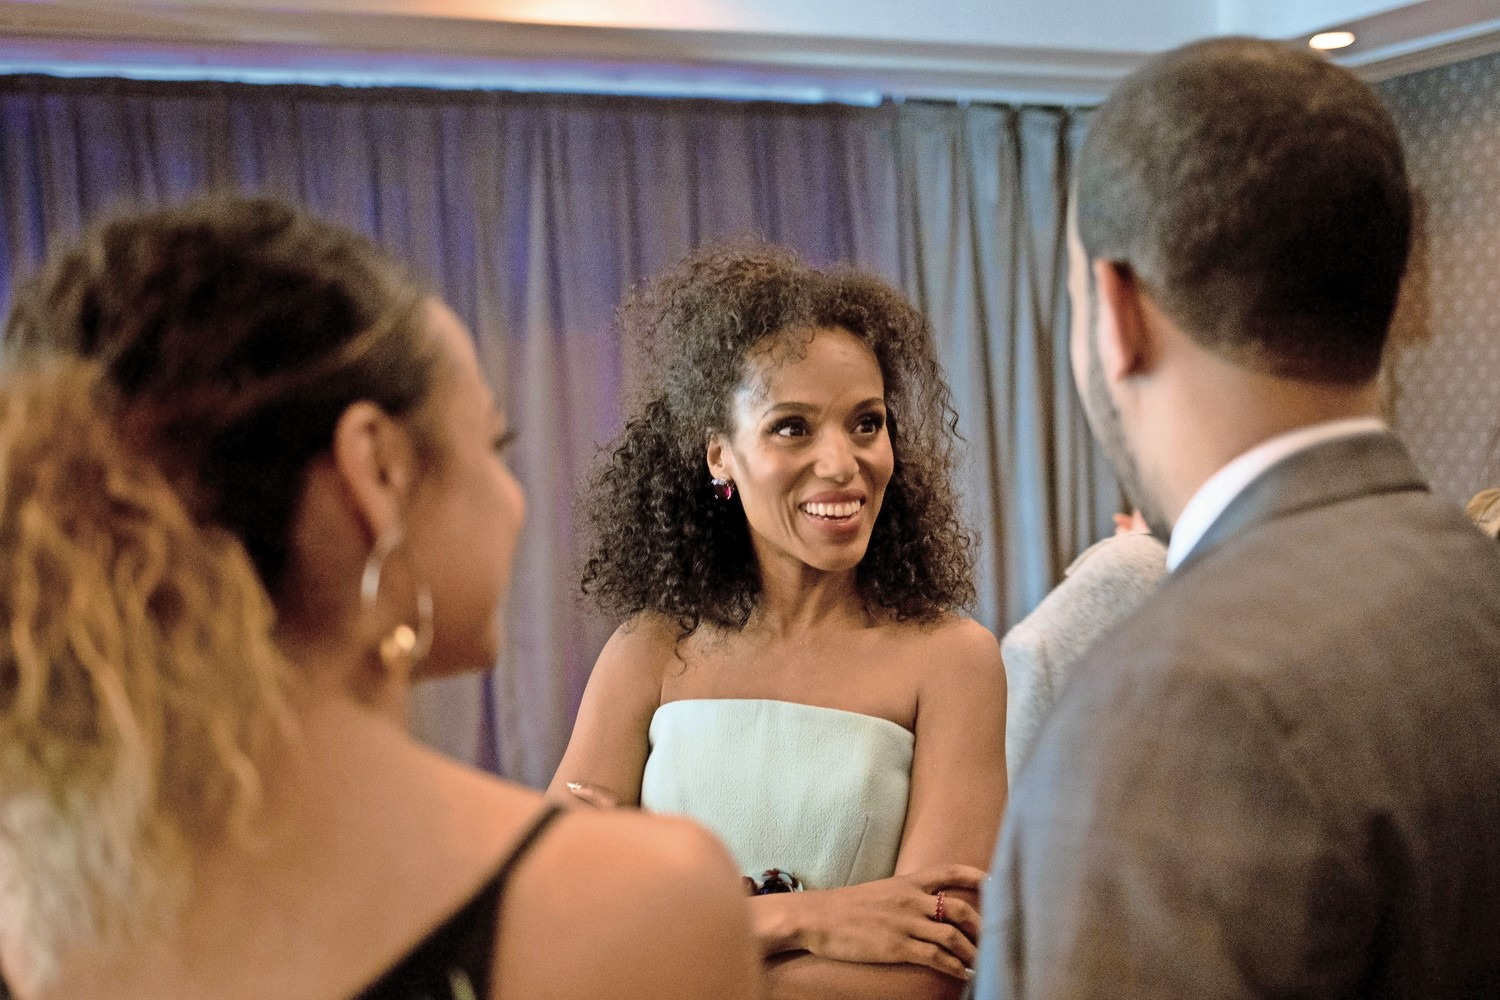 Kerry Washington attends Lehman College's 2018 gala. The actress received the Lehman Award for Artistic Achievement.